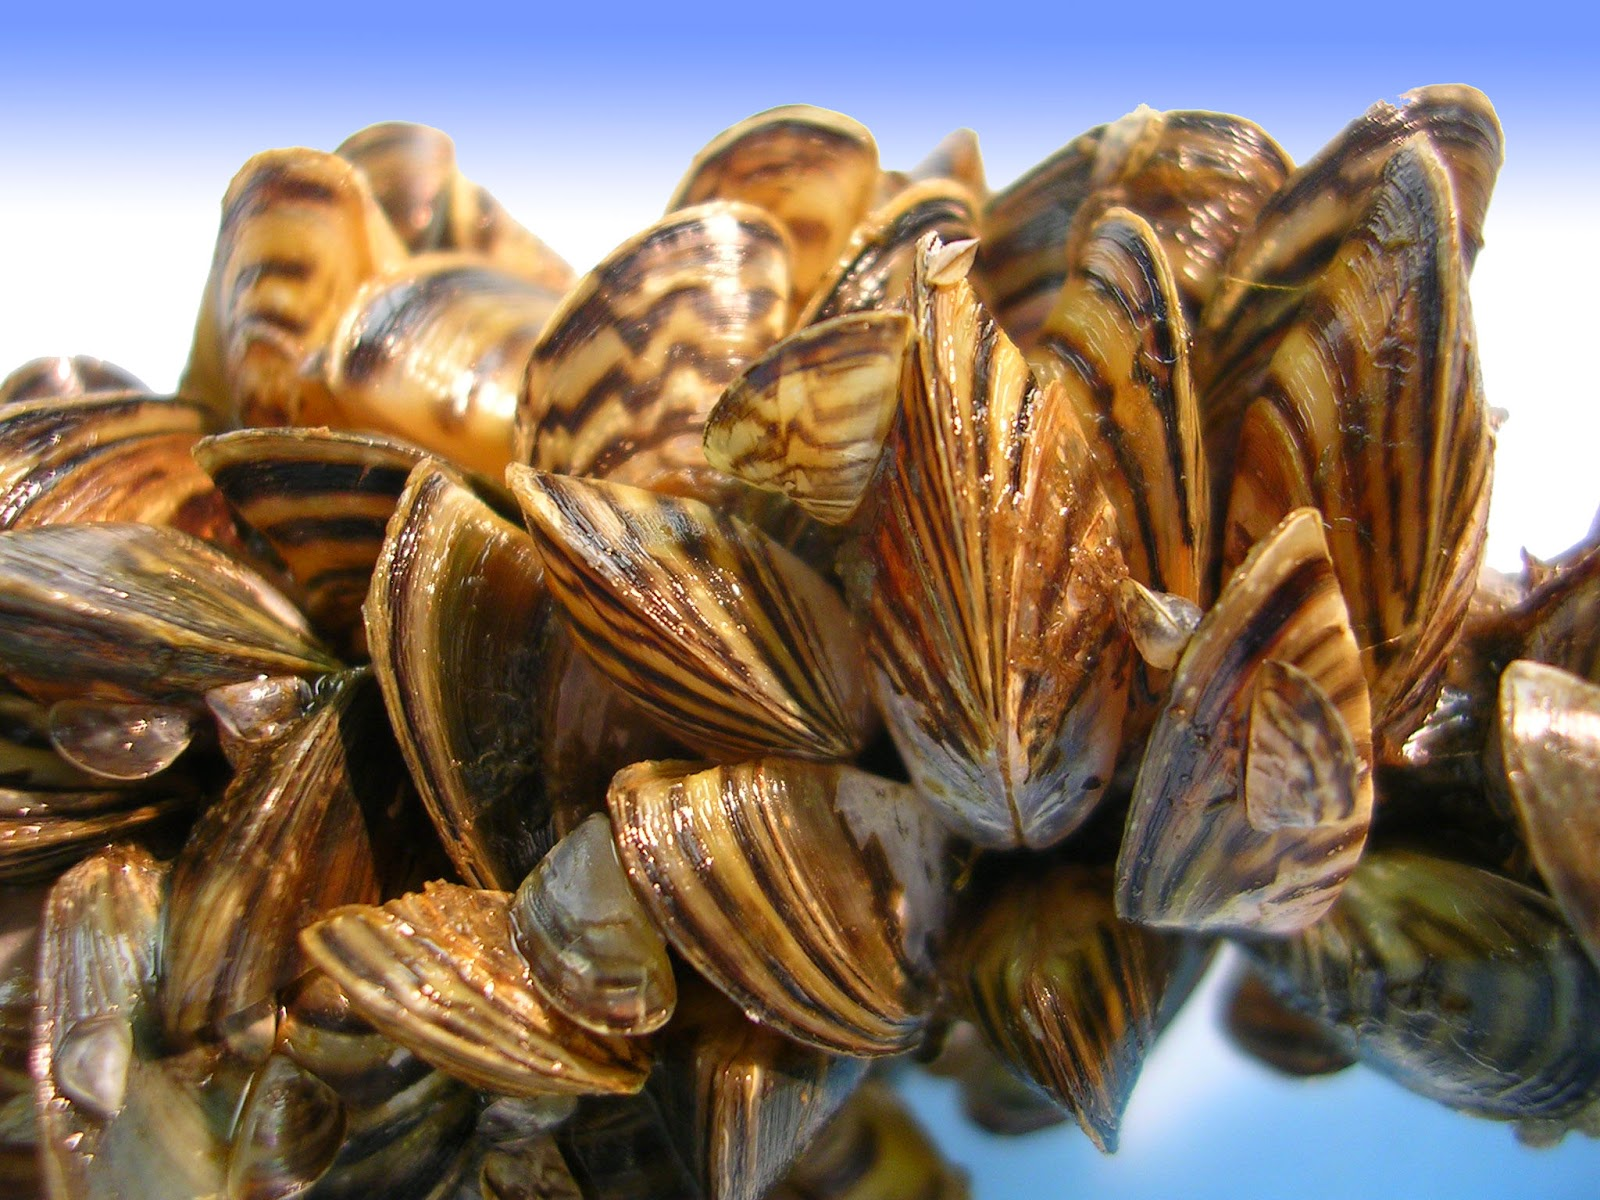 http://www.getsurrey.co.uk/news/surrey-news/quagga-mussels-dangerous-mollusc-spreads-8310531